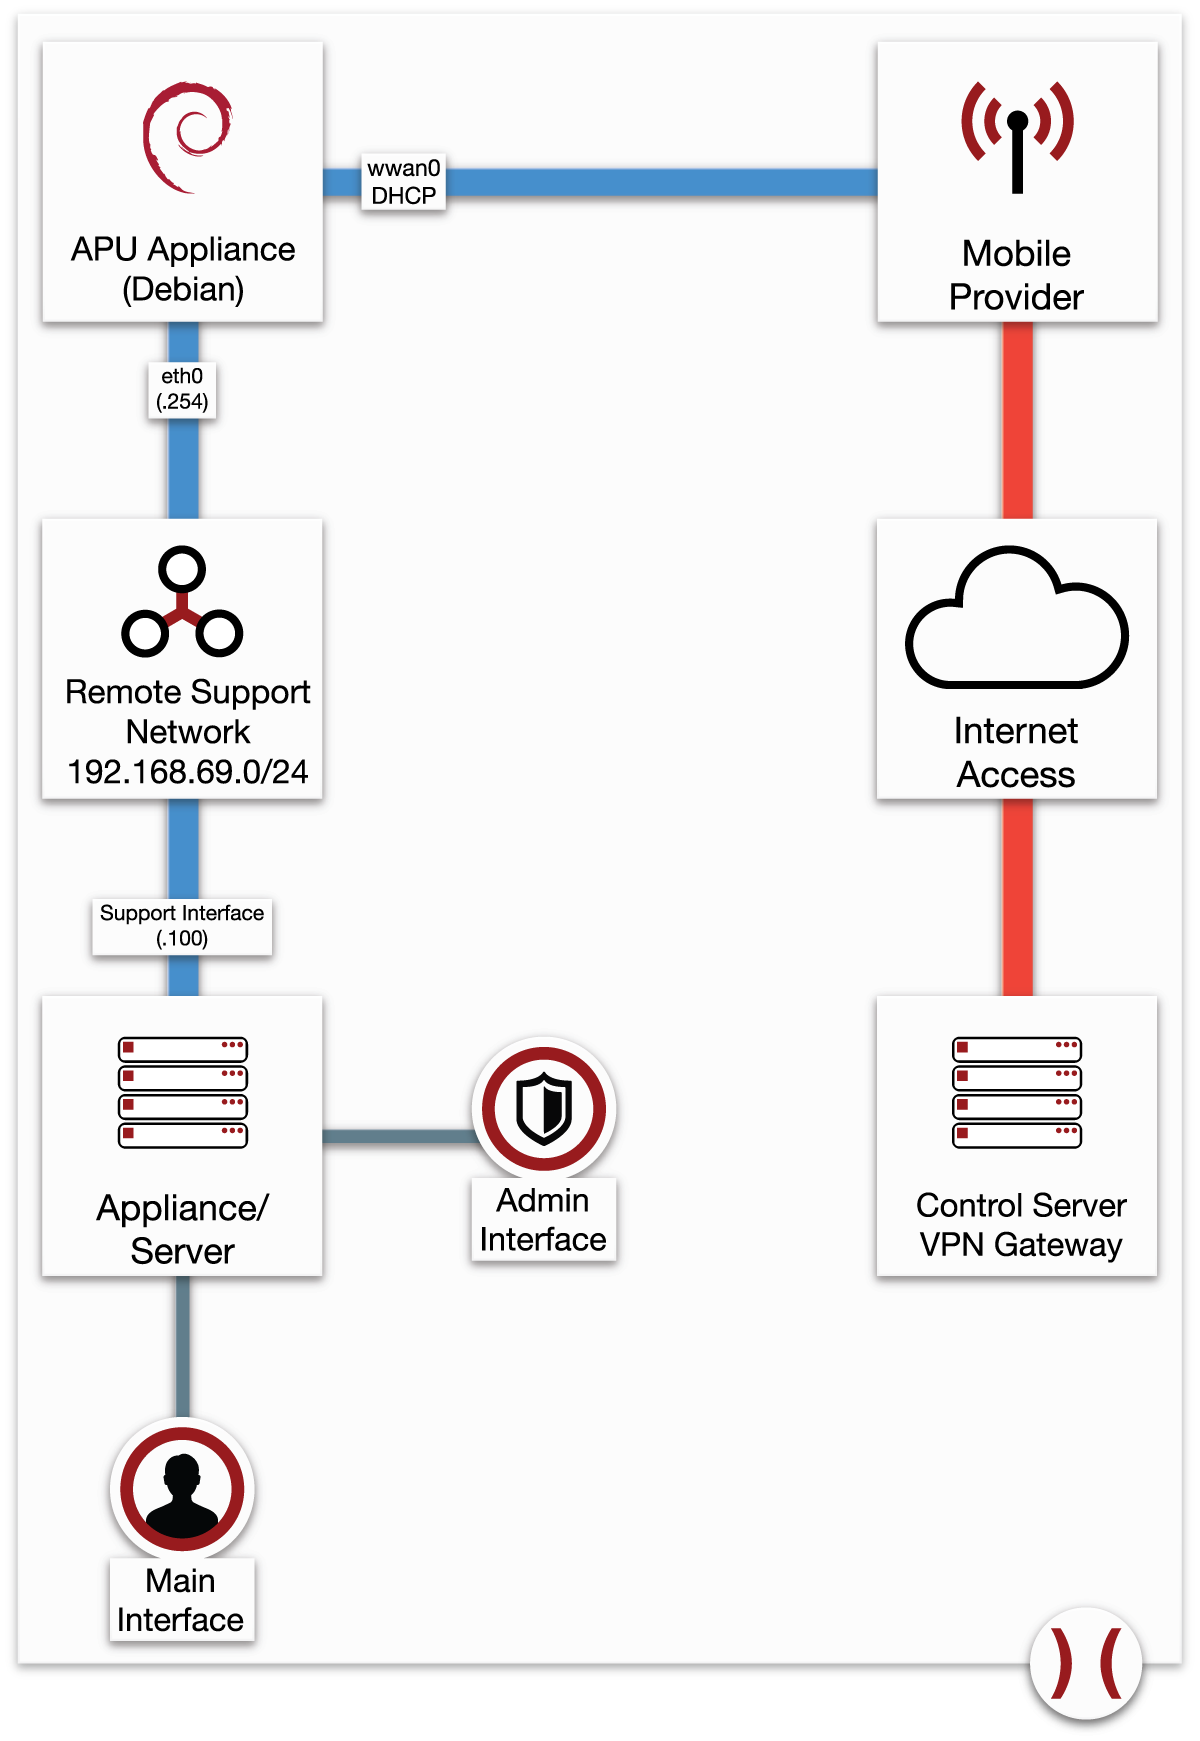 Securing out-of-band Remote Support (Part 1 of 2)